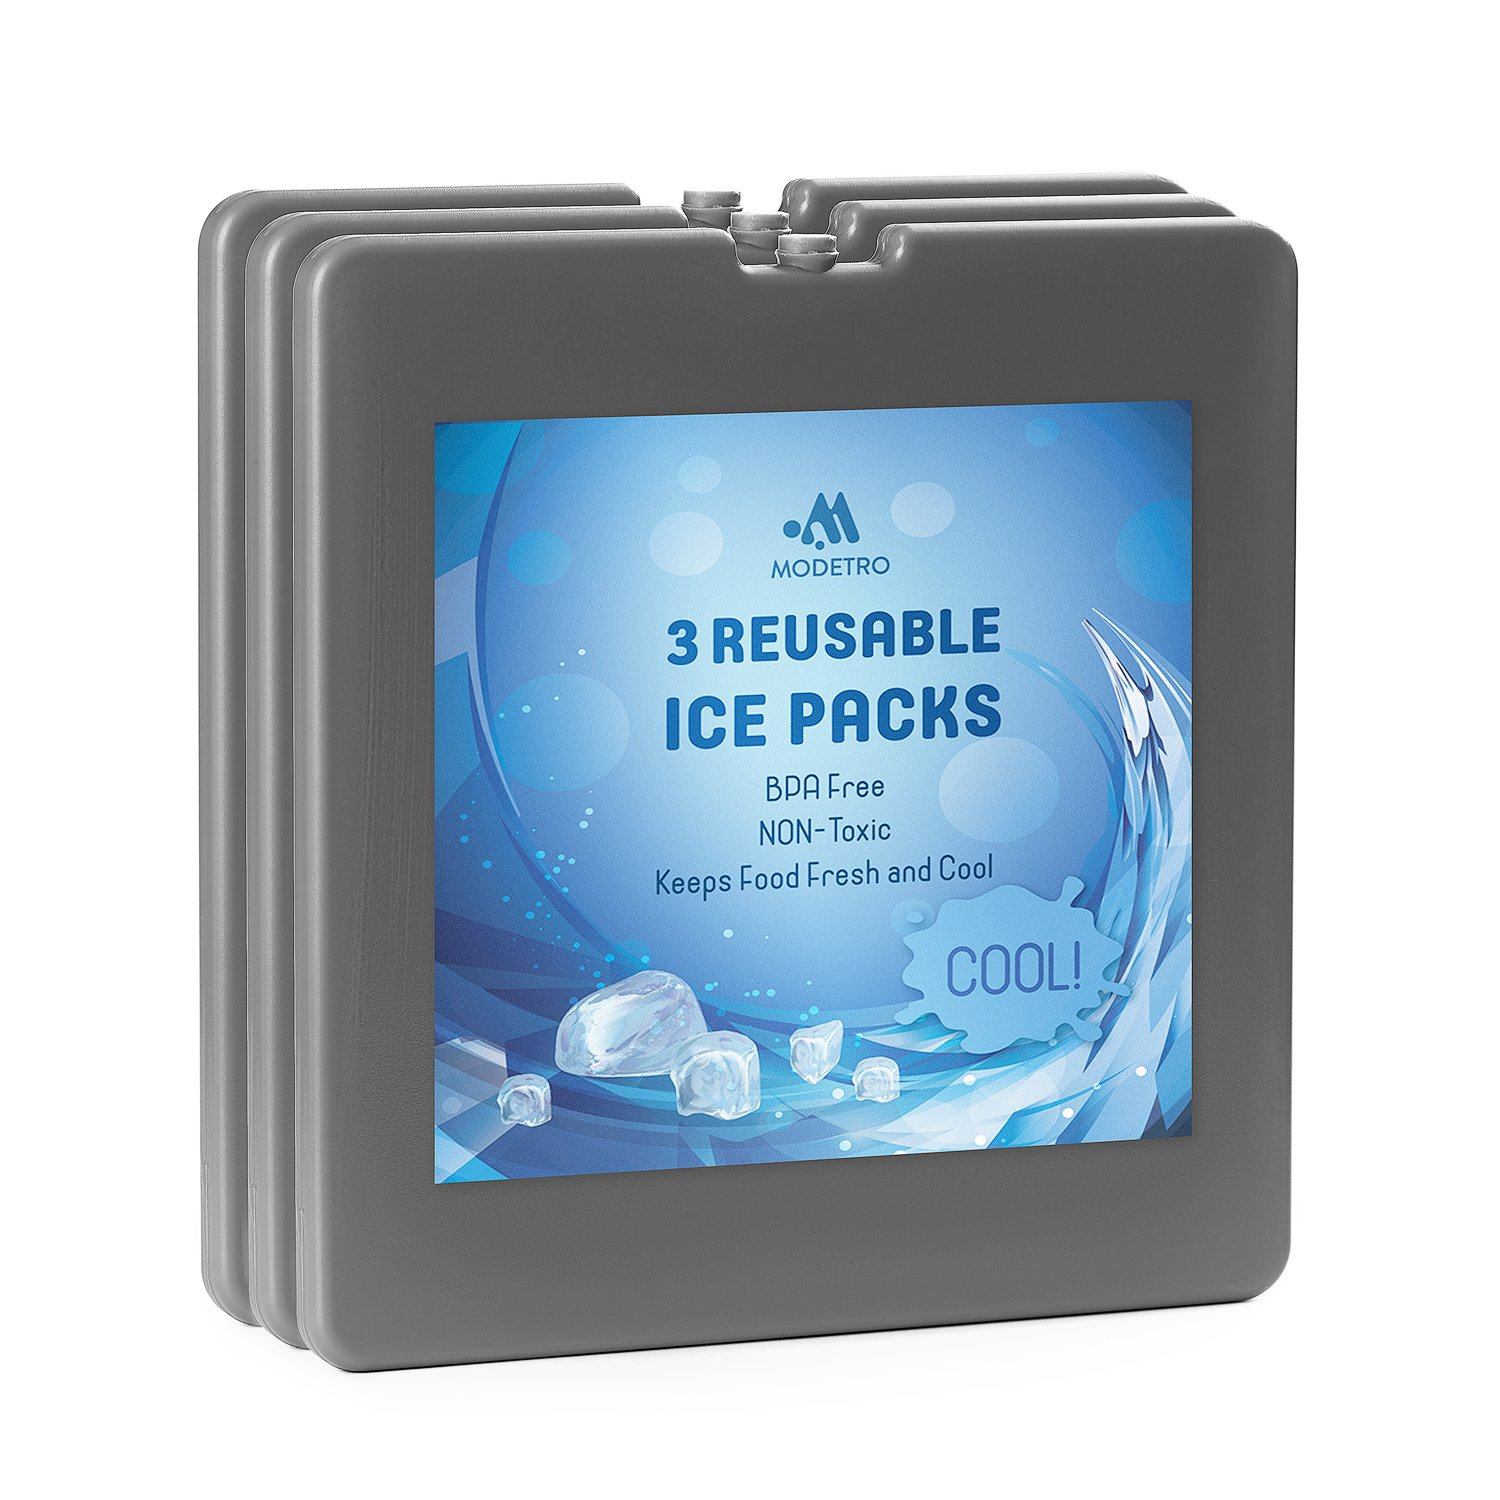 Modetro Ice Pack - Reusable Ice Pack for Coolers, Lunch Boxes, or Thermal Freeze Bags - BPA Free Lunchbox Heavy Duty Cold Pack - Re-Freezable Ultra Slim Long Lasting Ice Pack - Square - 19 cm per side